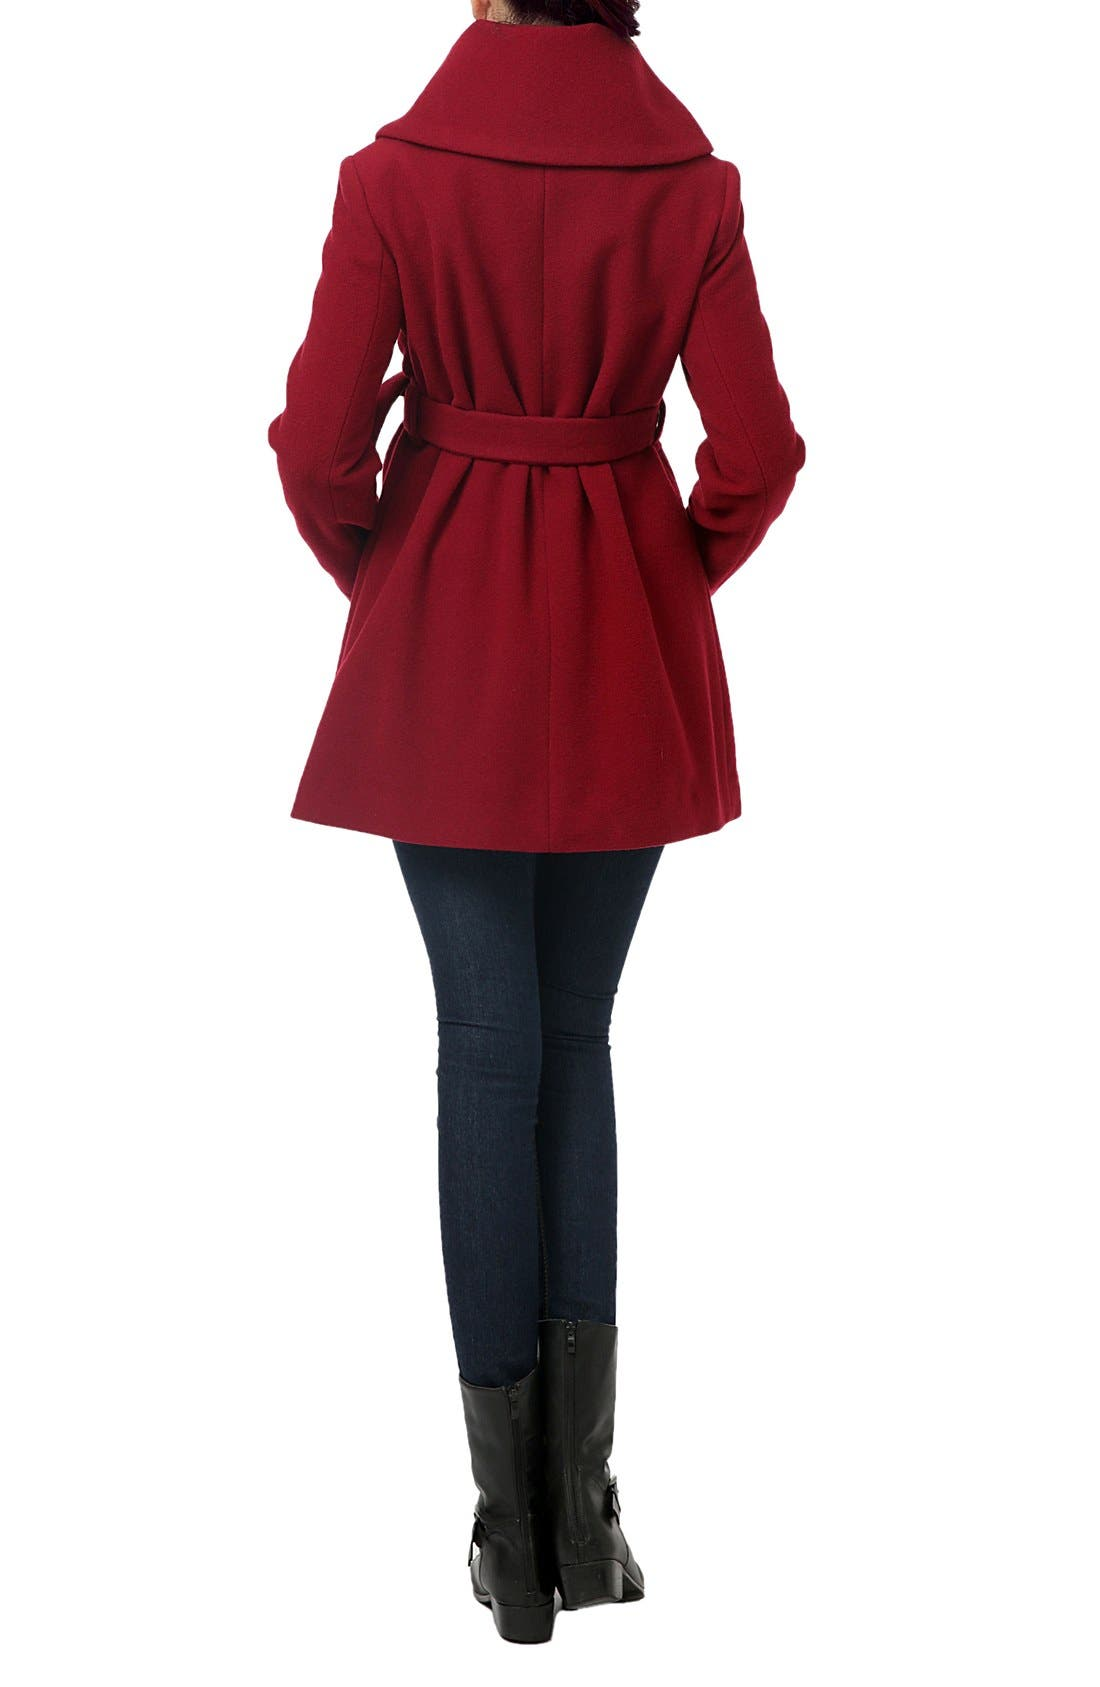 'Mia' High Collar Maternity Coat,                             Alternate thumbnail 2, color,                             Wine